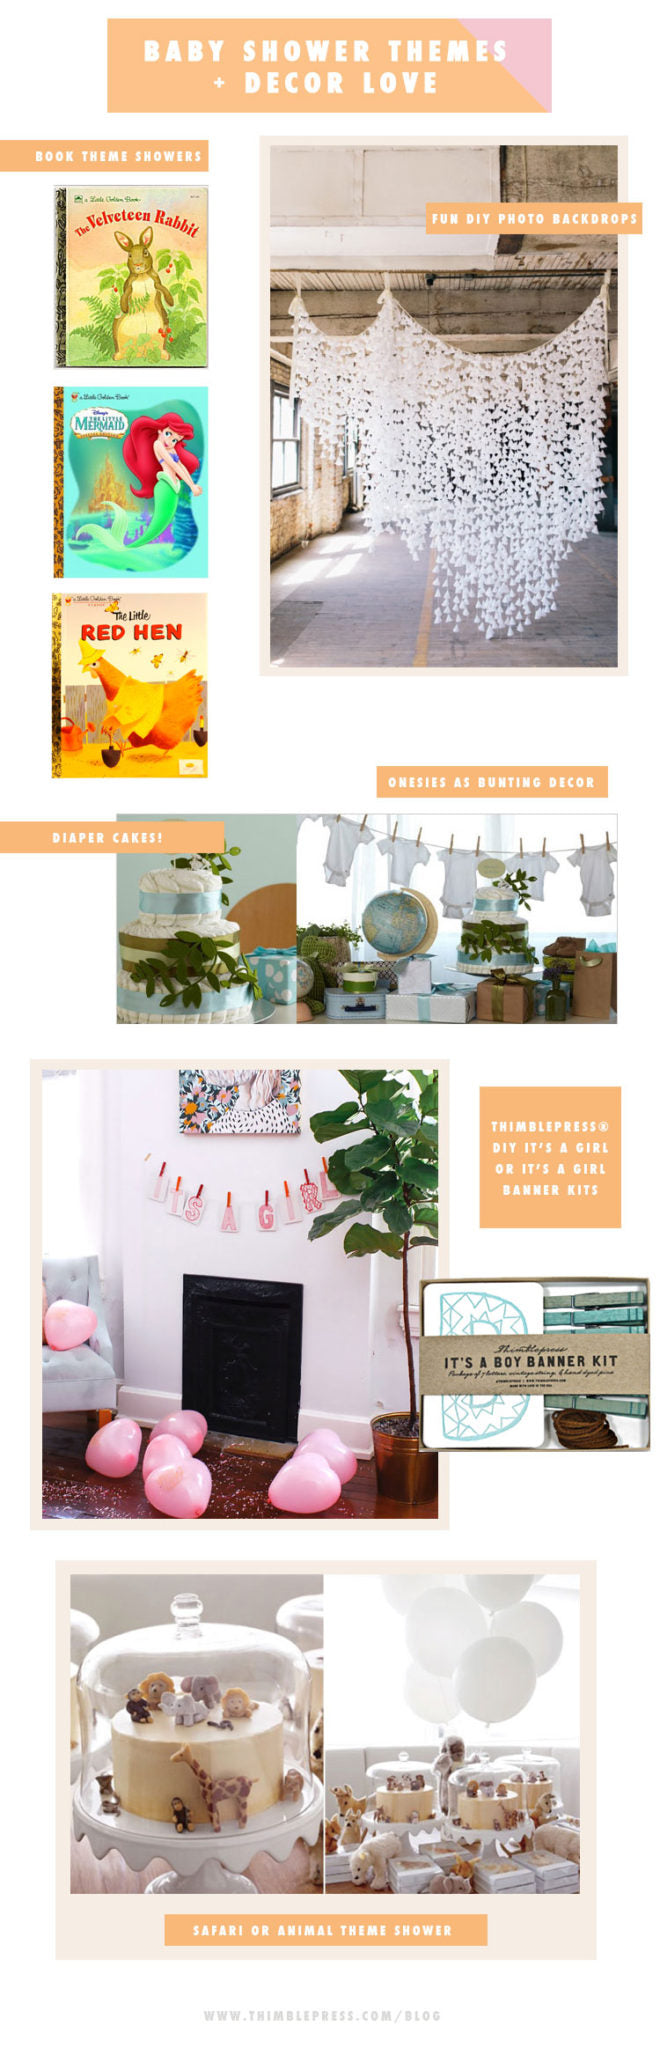 BABY_SHOWER_IDEAS